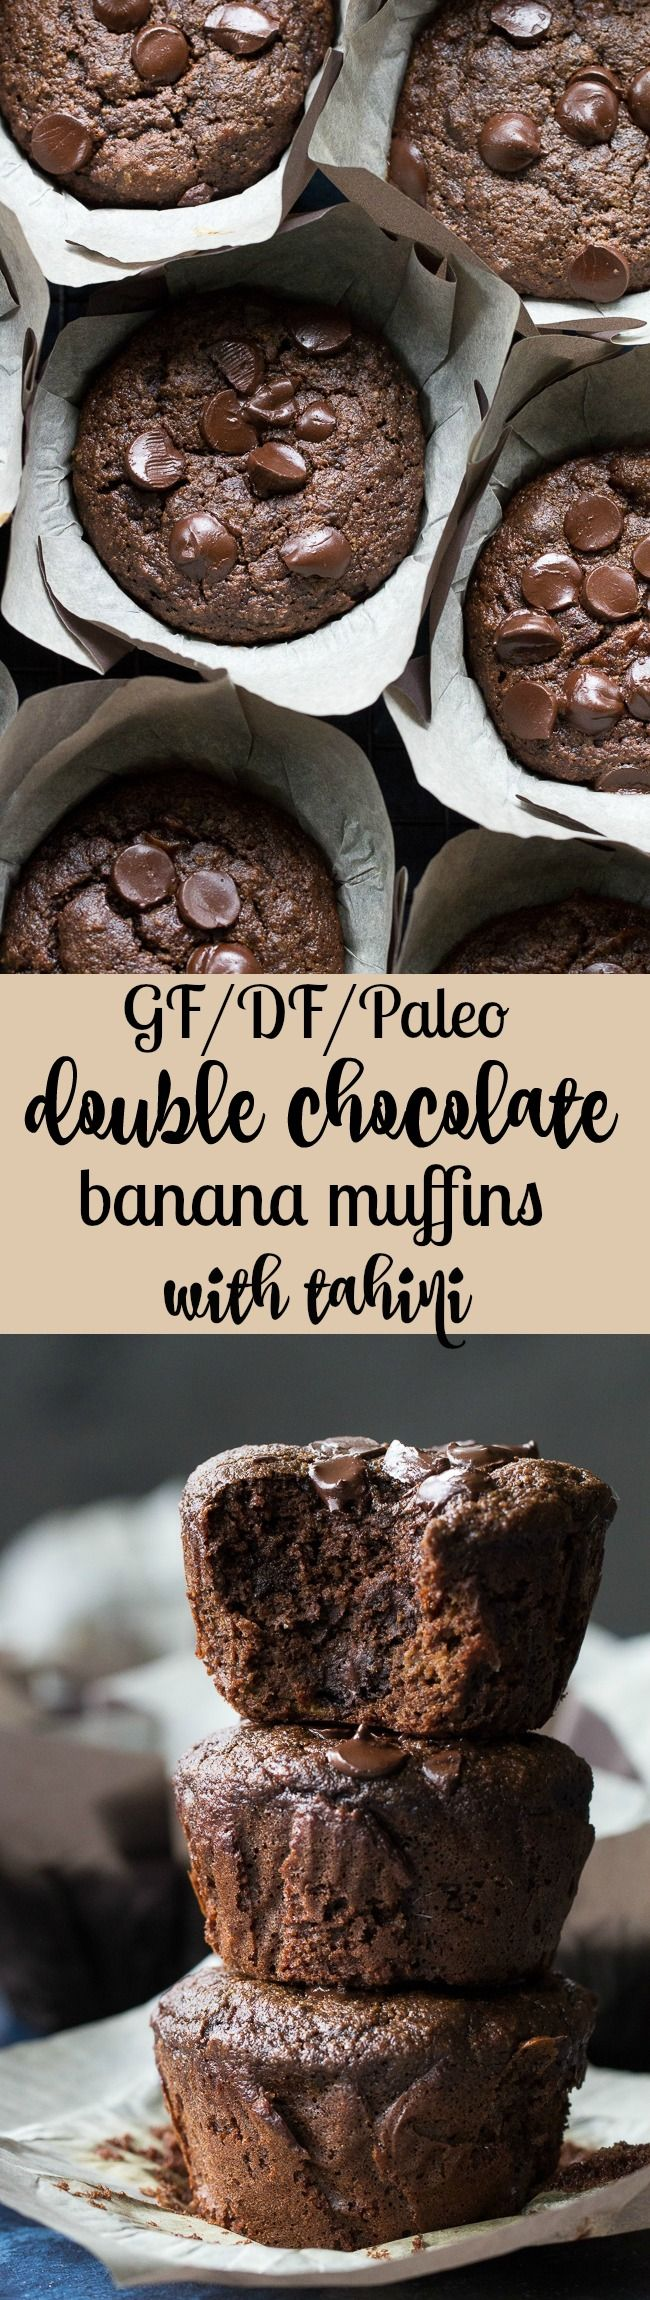 Extra rich yet super healthy double chocolate banana muffins made with tahini for a nutty flavor and moist, cake-like texture. They're gluten free, grain free, dairy free and Paleo and even kid friendly! Have one for breakfast, an afternoon snack, or anytime you need a chocolate fix.